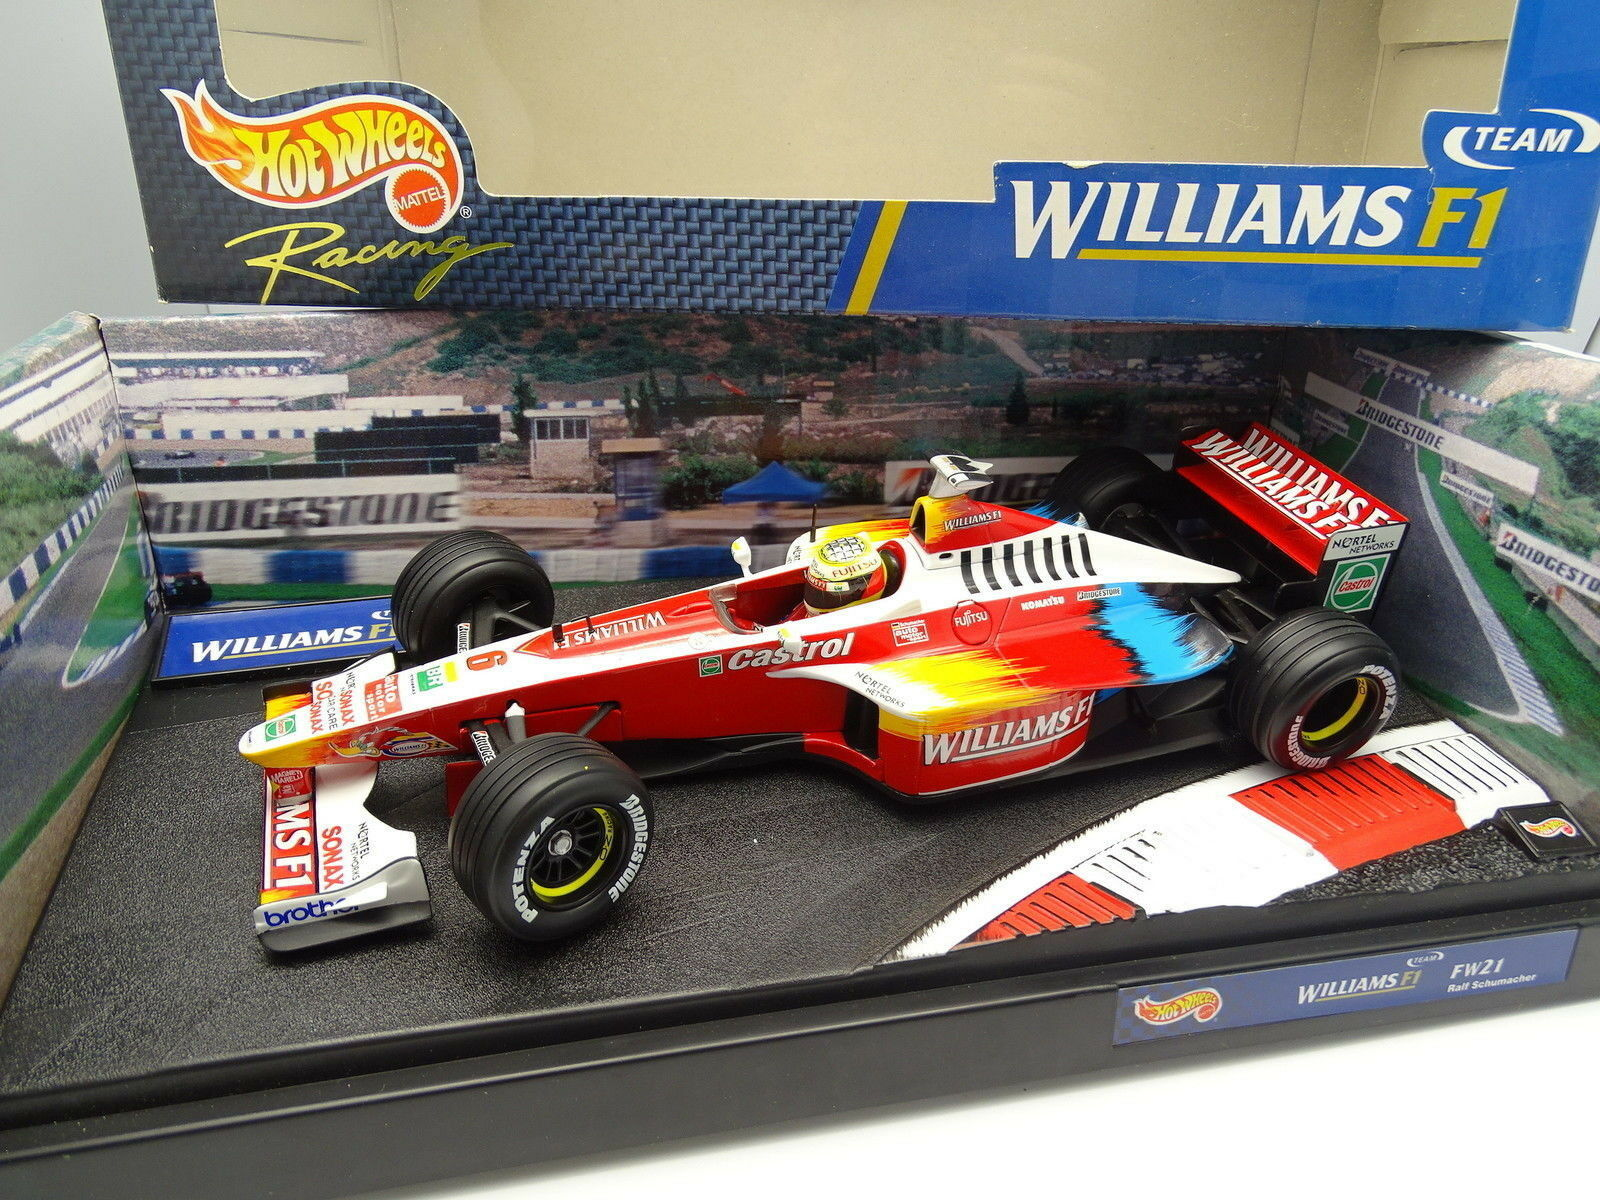 Hot Wheels 1 18 - F1 Williams Mecachrome FW21 R Schumacher